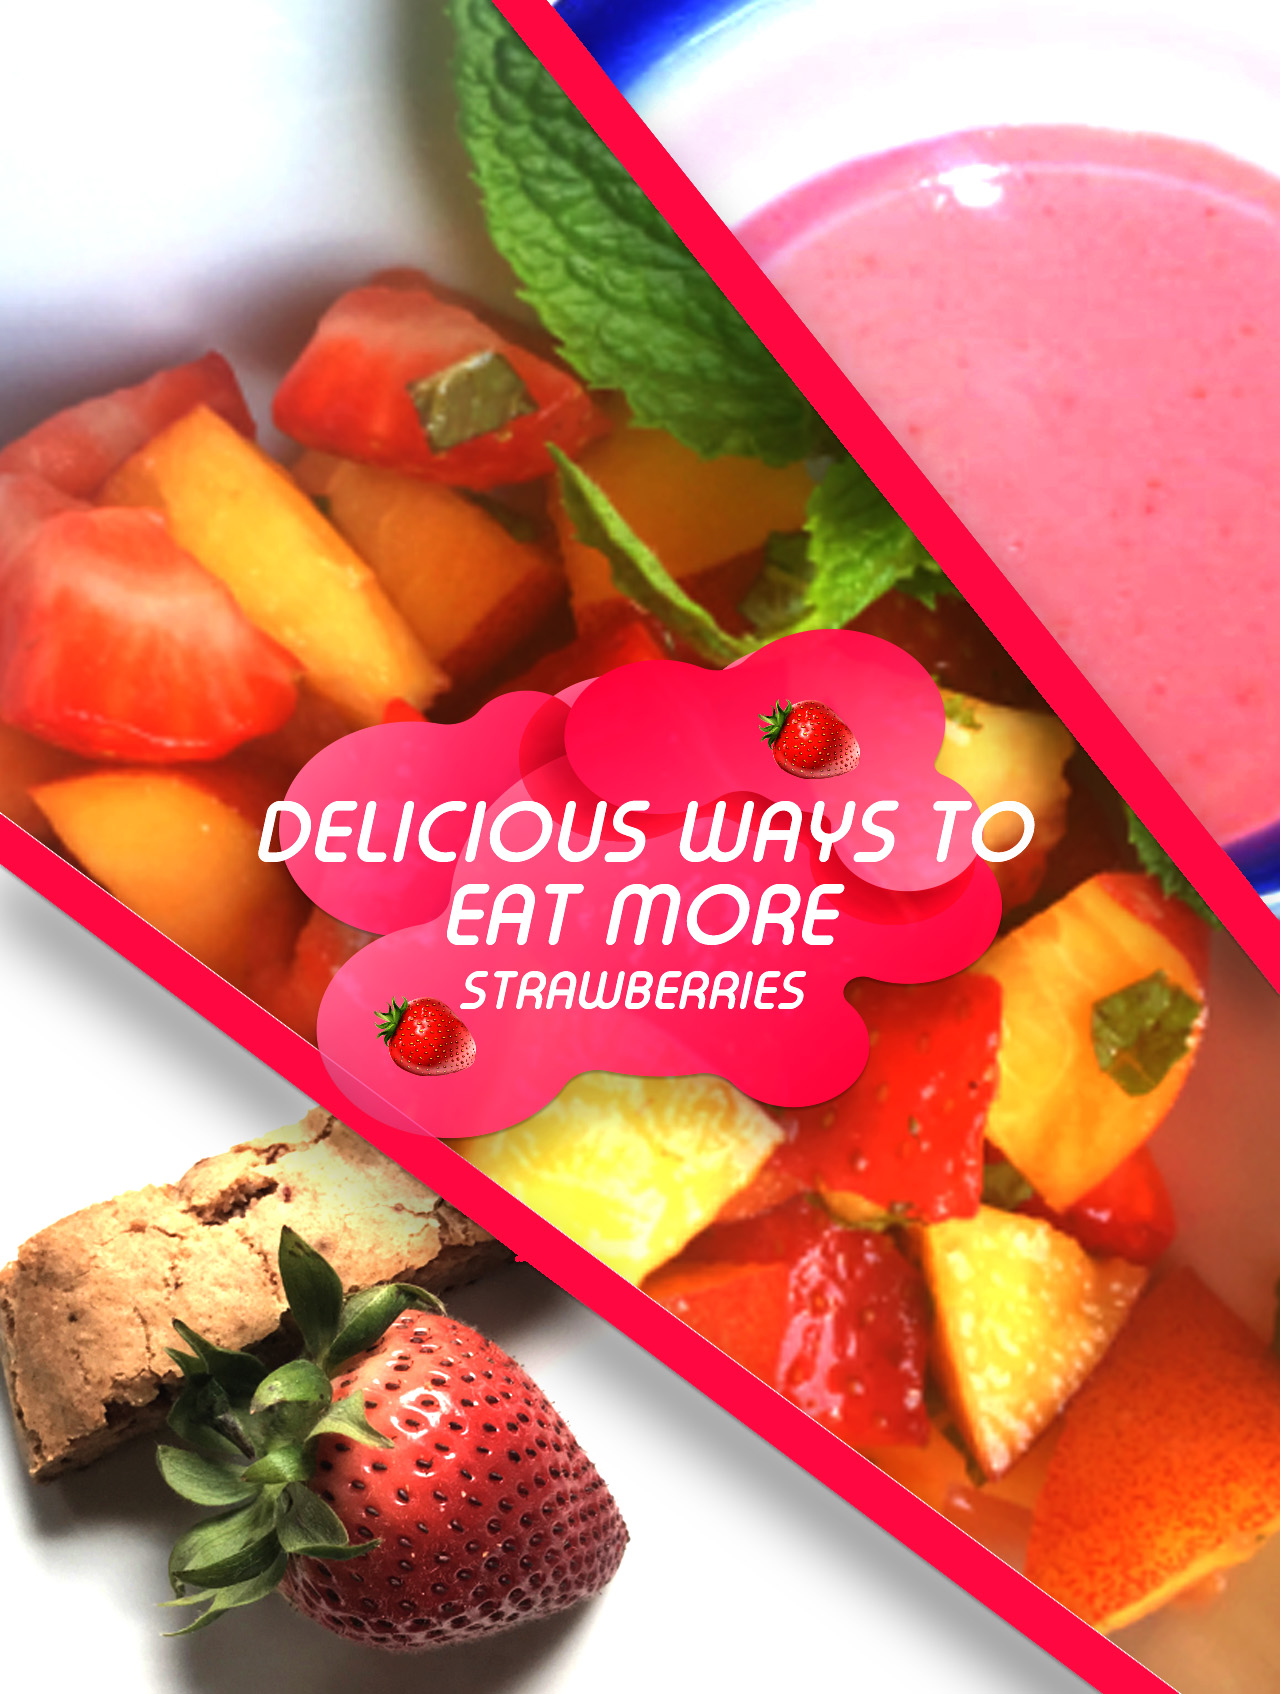 3 recipes that feature strawberries